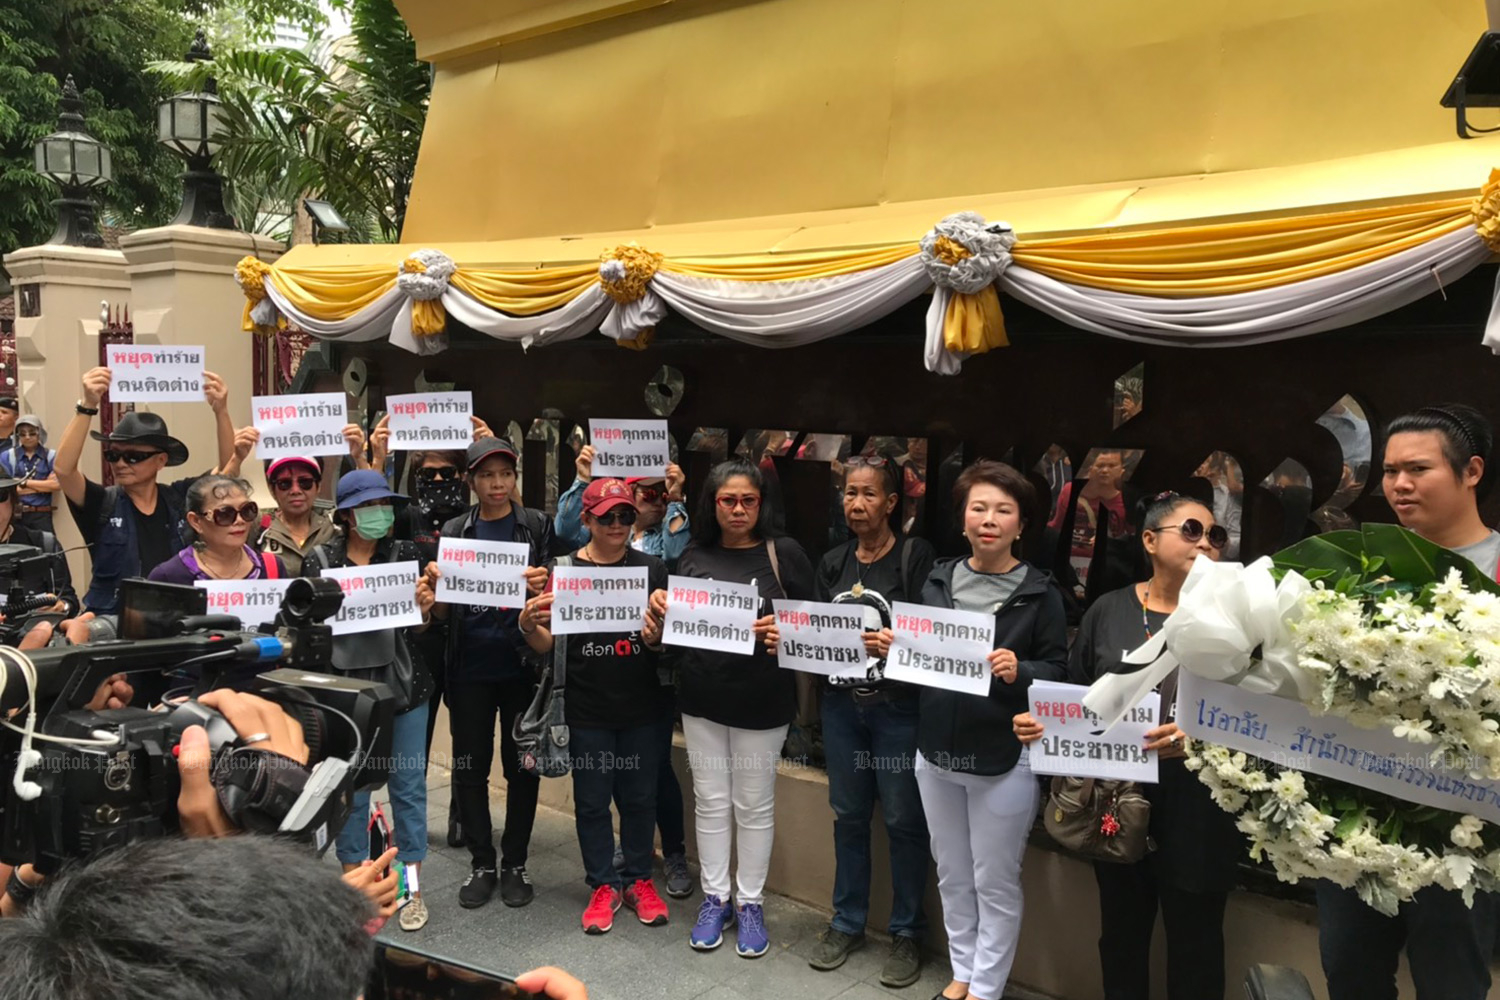 Black-clad activists hold signs attacking those who assault people with different political views, as they gather at the Royal Thai Police Office on Tuesday to present a wreath signifying the failure of the justice system.  (Photo by Wassayos Ngamkham)